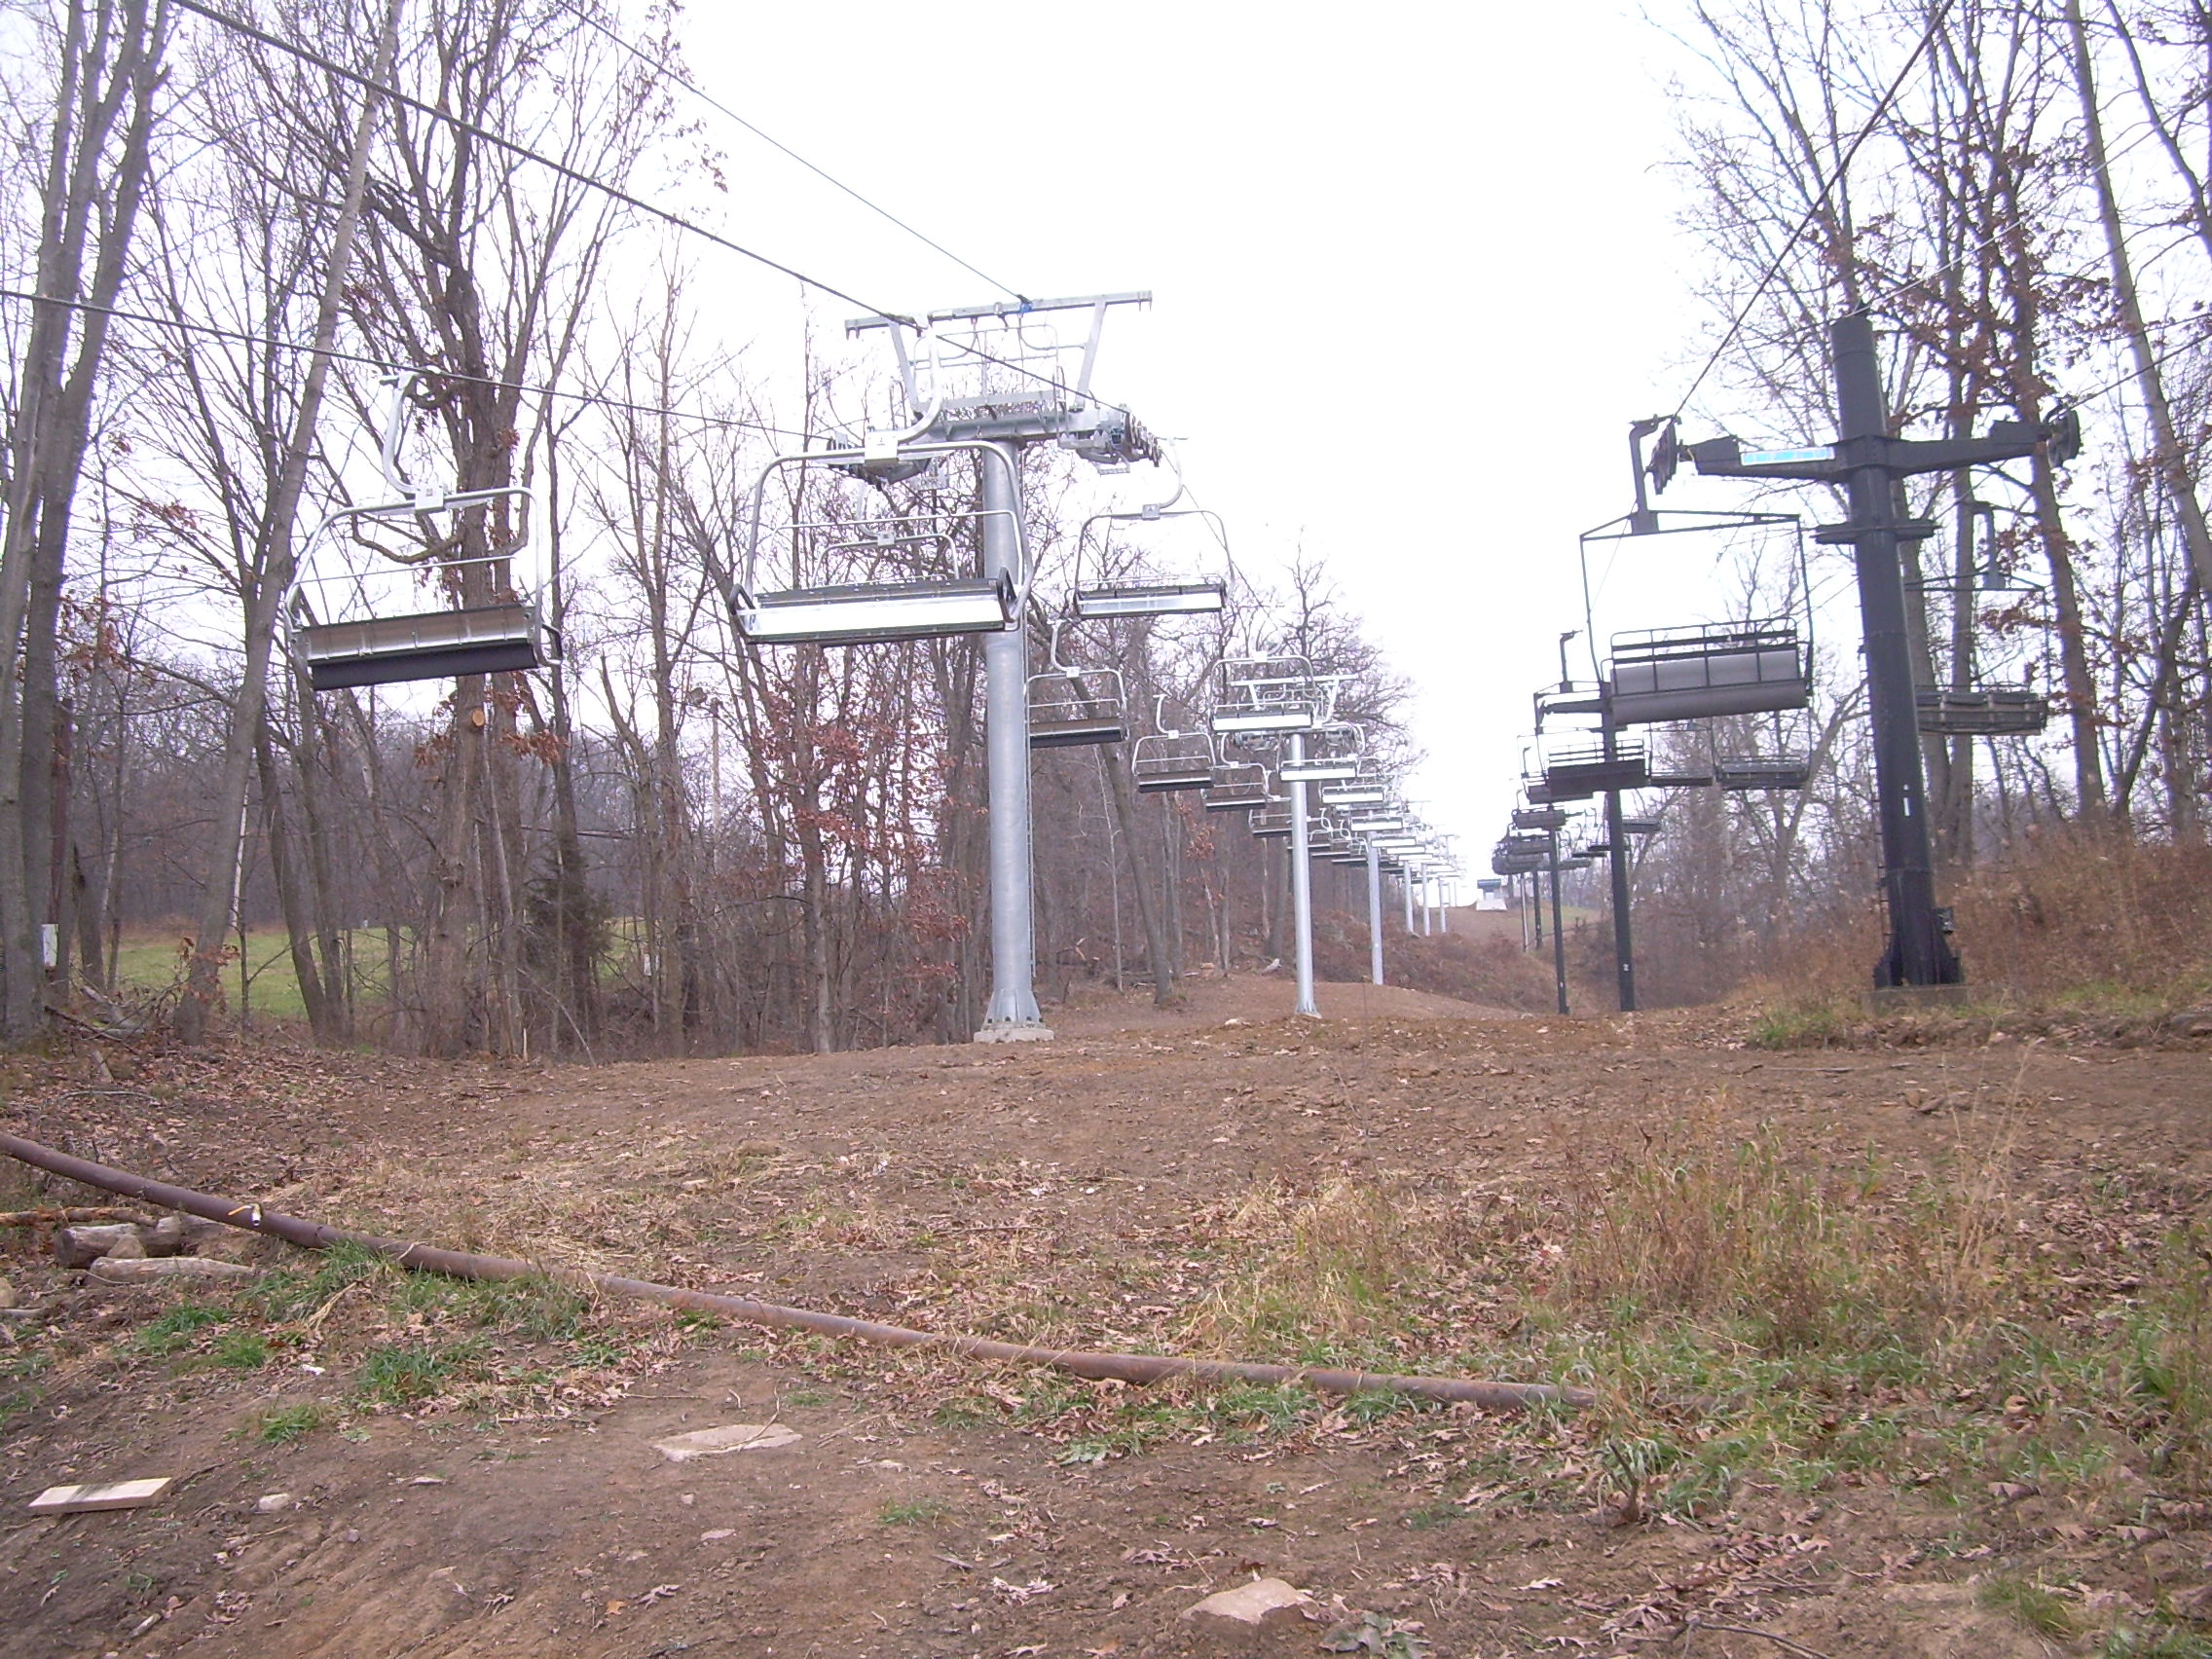 Ski lift at Devils Head in Merriam, WI